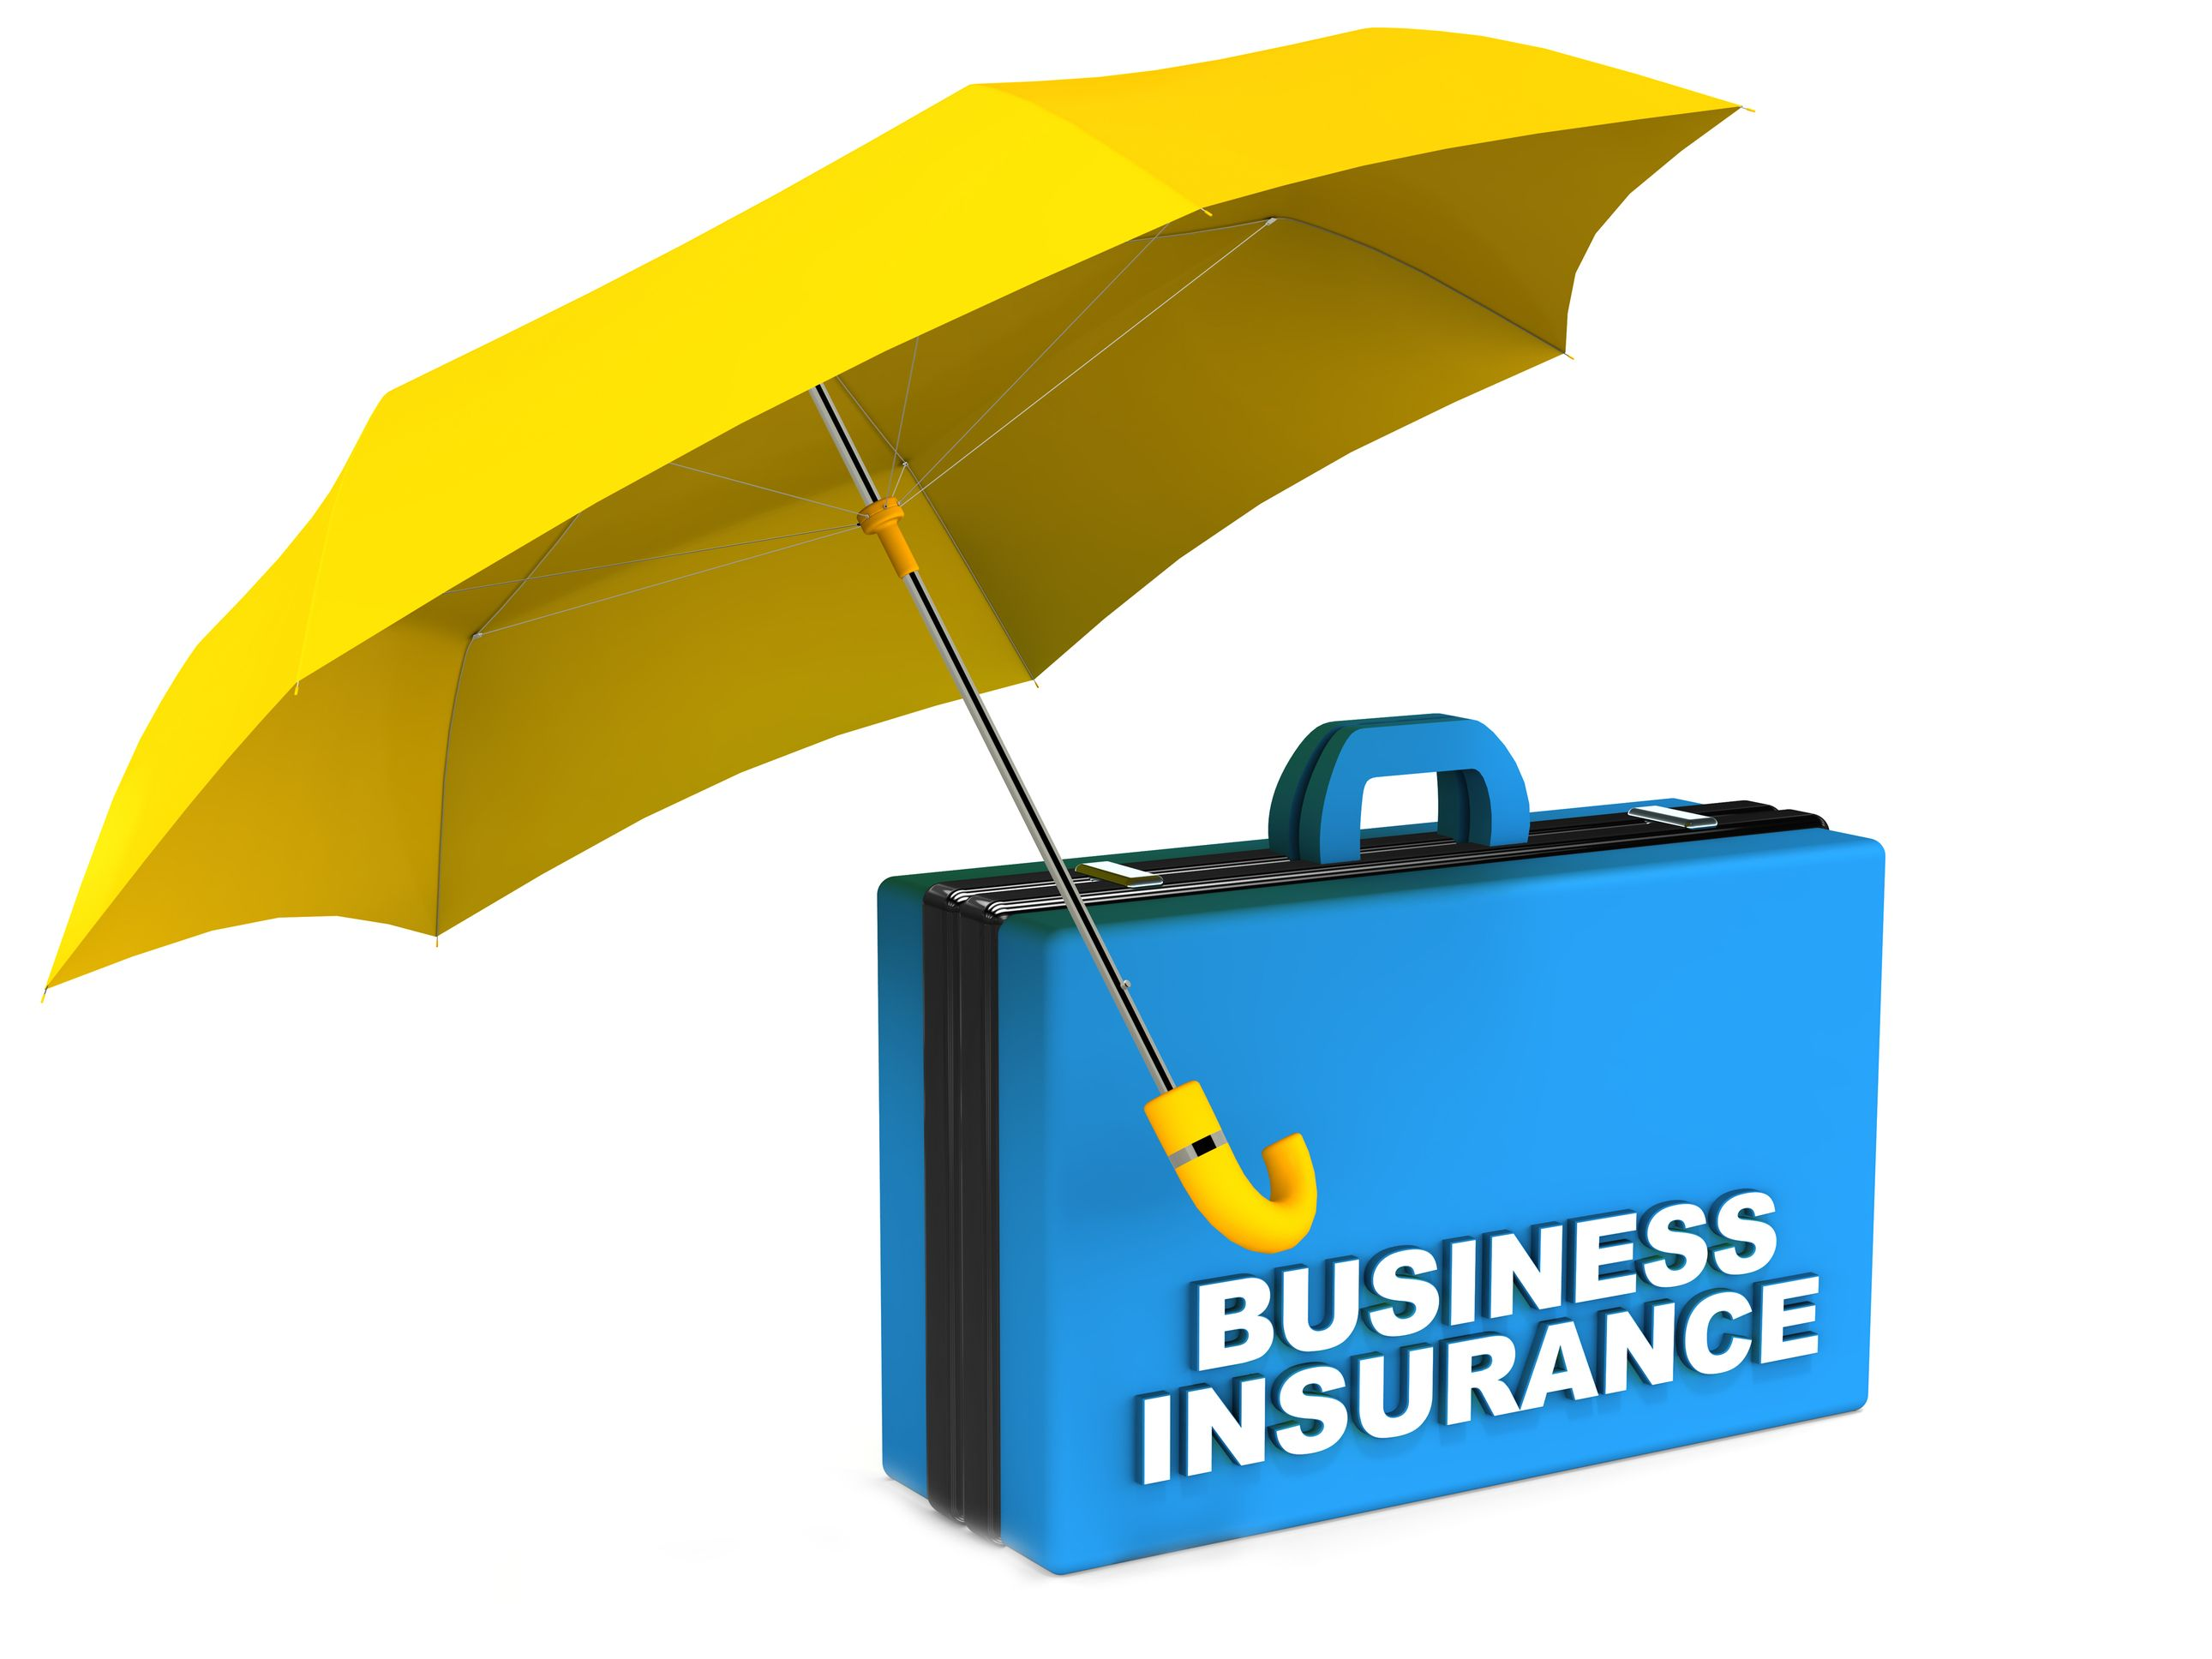 Personalized Your BusinessInsurancePolicy with Kirstein